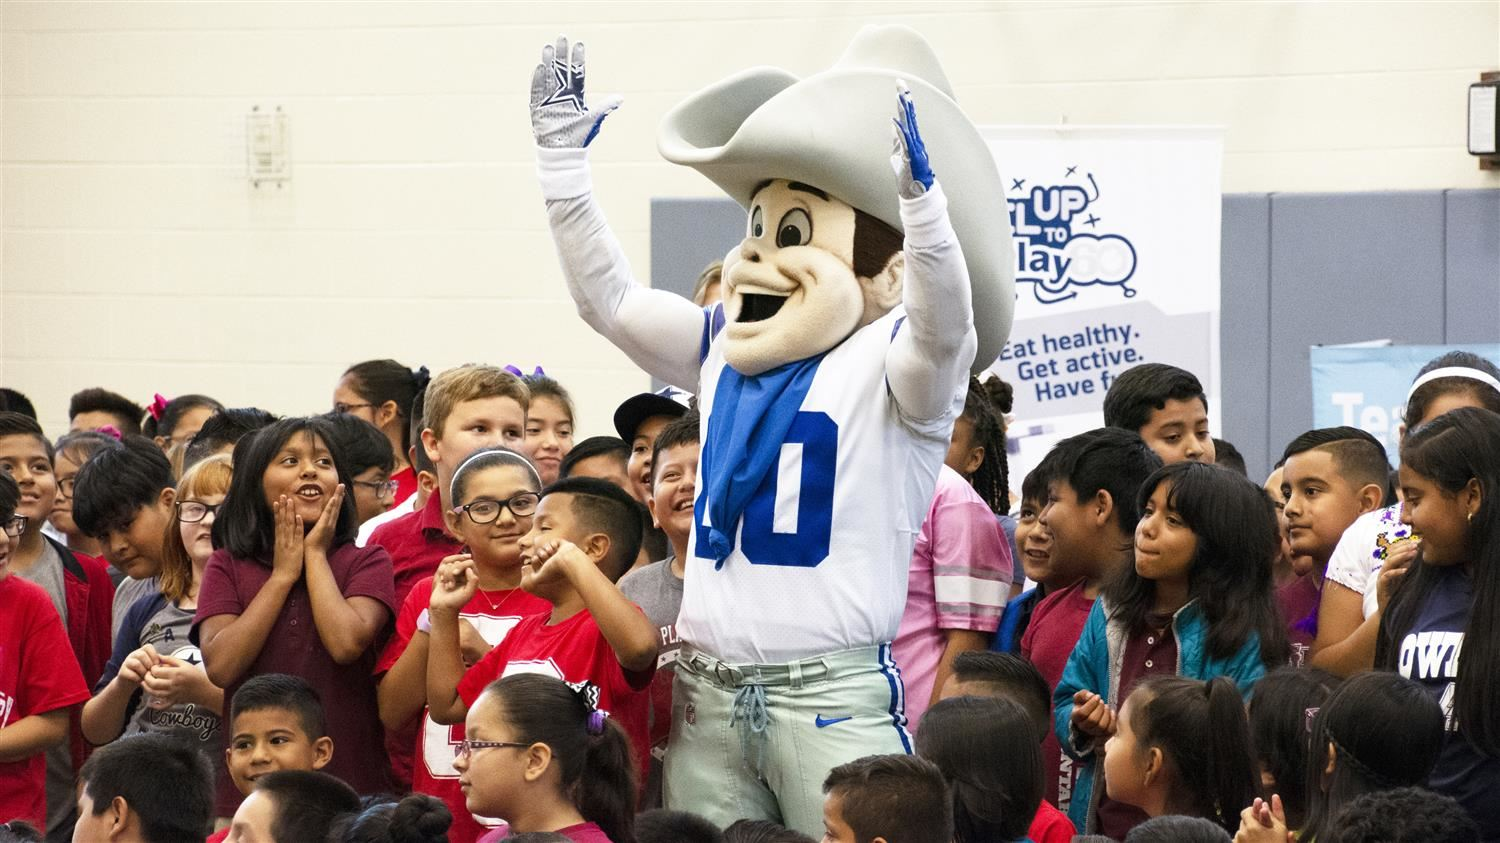 Dallas Cowboys Mascot Energizes Central Elementary